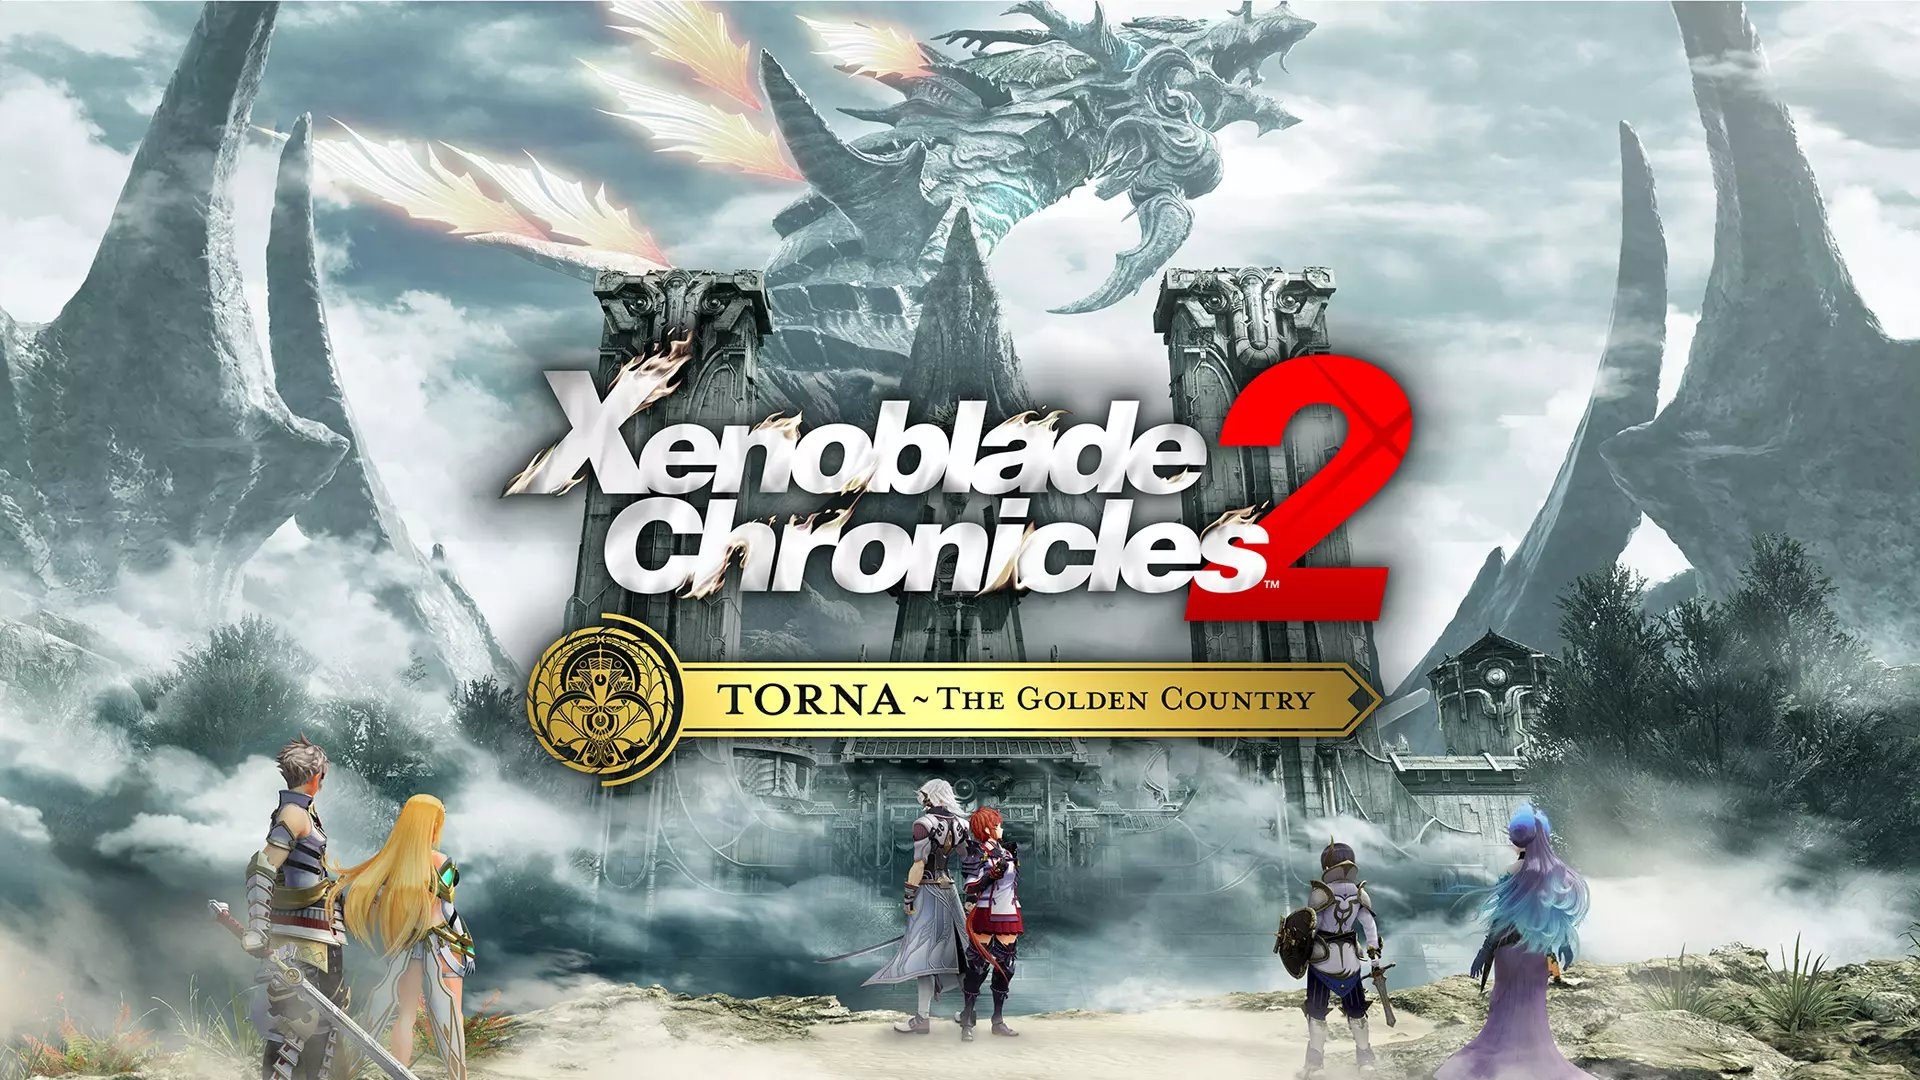 Monolith Soft Reveals More On Xenoblade Chronicles 2 Torna The